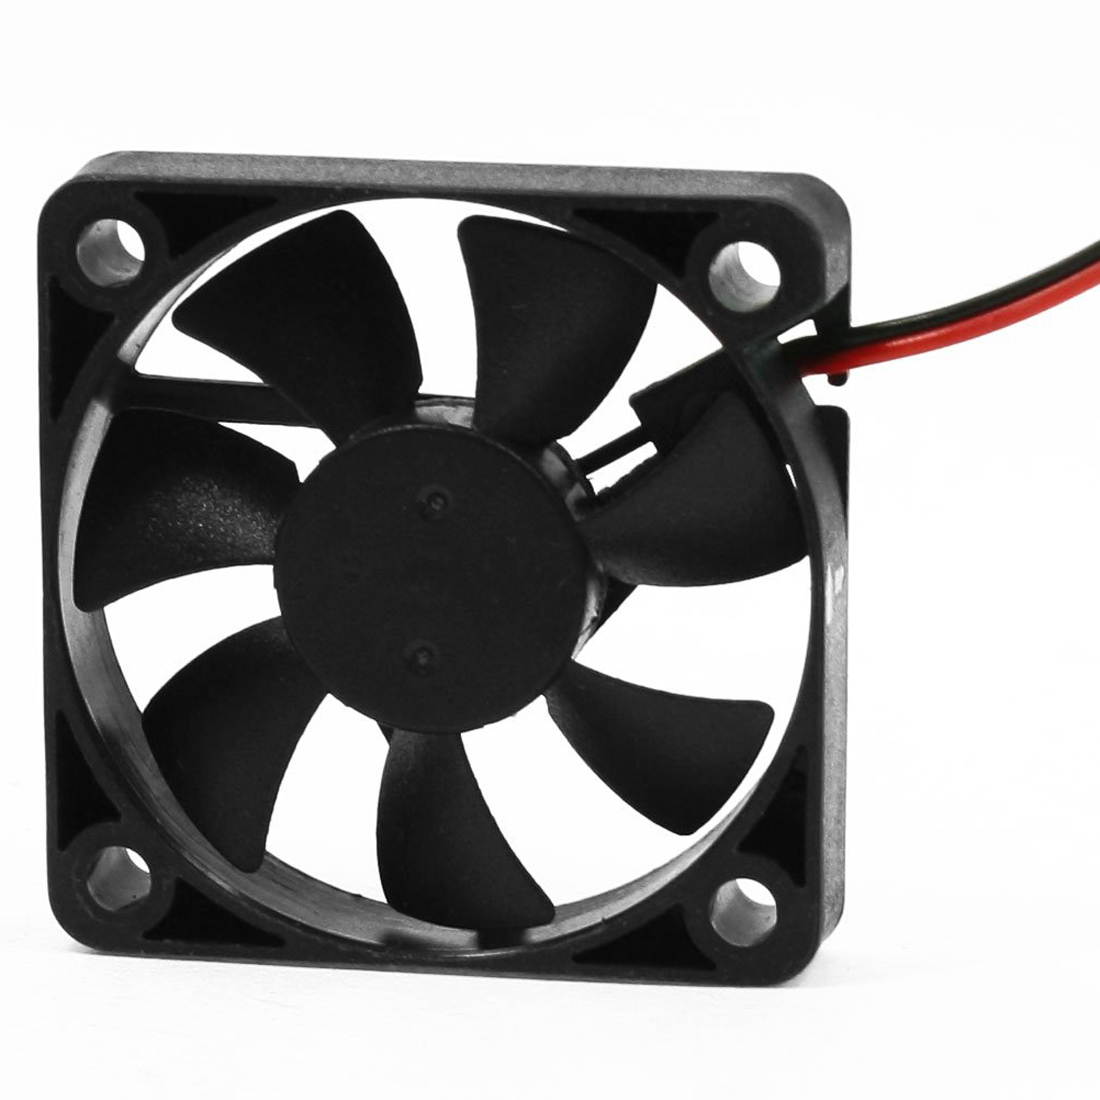 50mm x 50mm x 10mm 5010 DC 12V 0.1A 2Pin Brushless Cooling Fan gdstime 10 pcs dc 12v 14025 pc case cooling fan 140mm x 25mm 14cm 2 wire 2pin connector computer 140x140x25mm